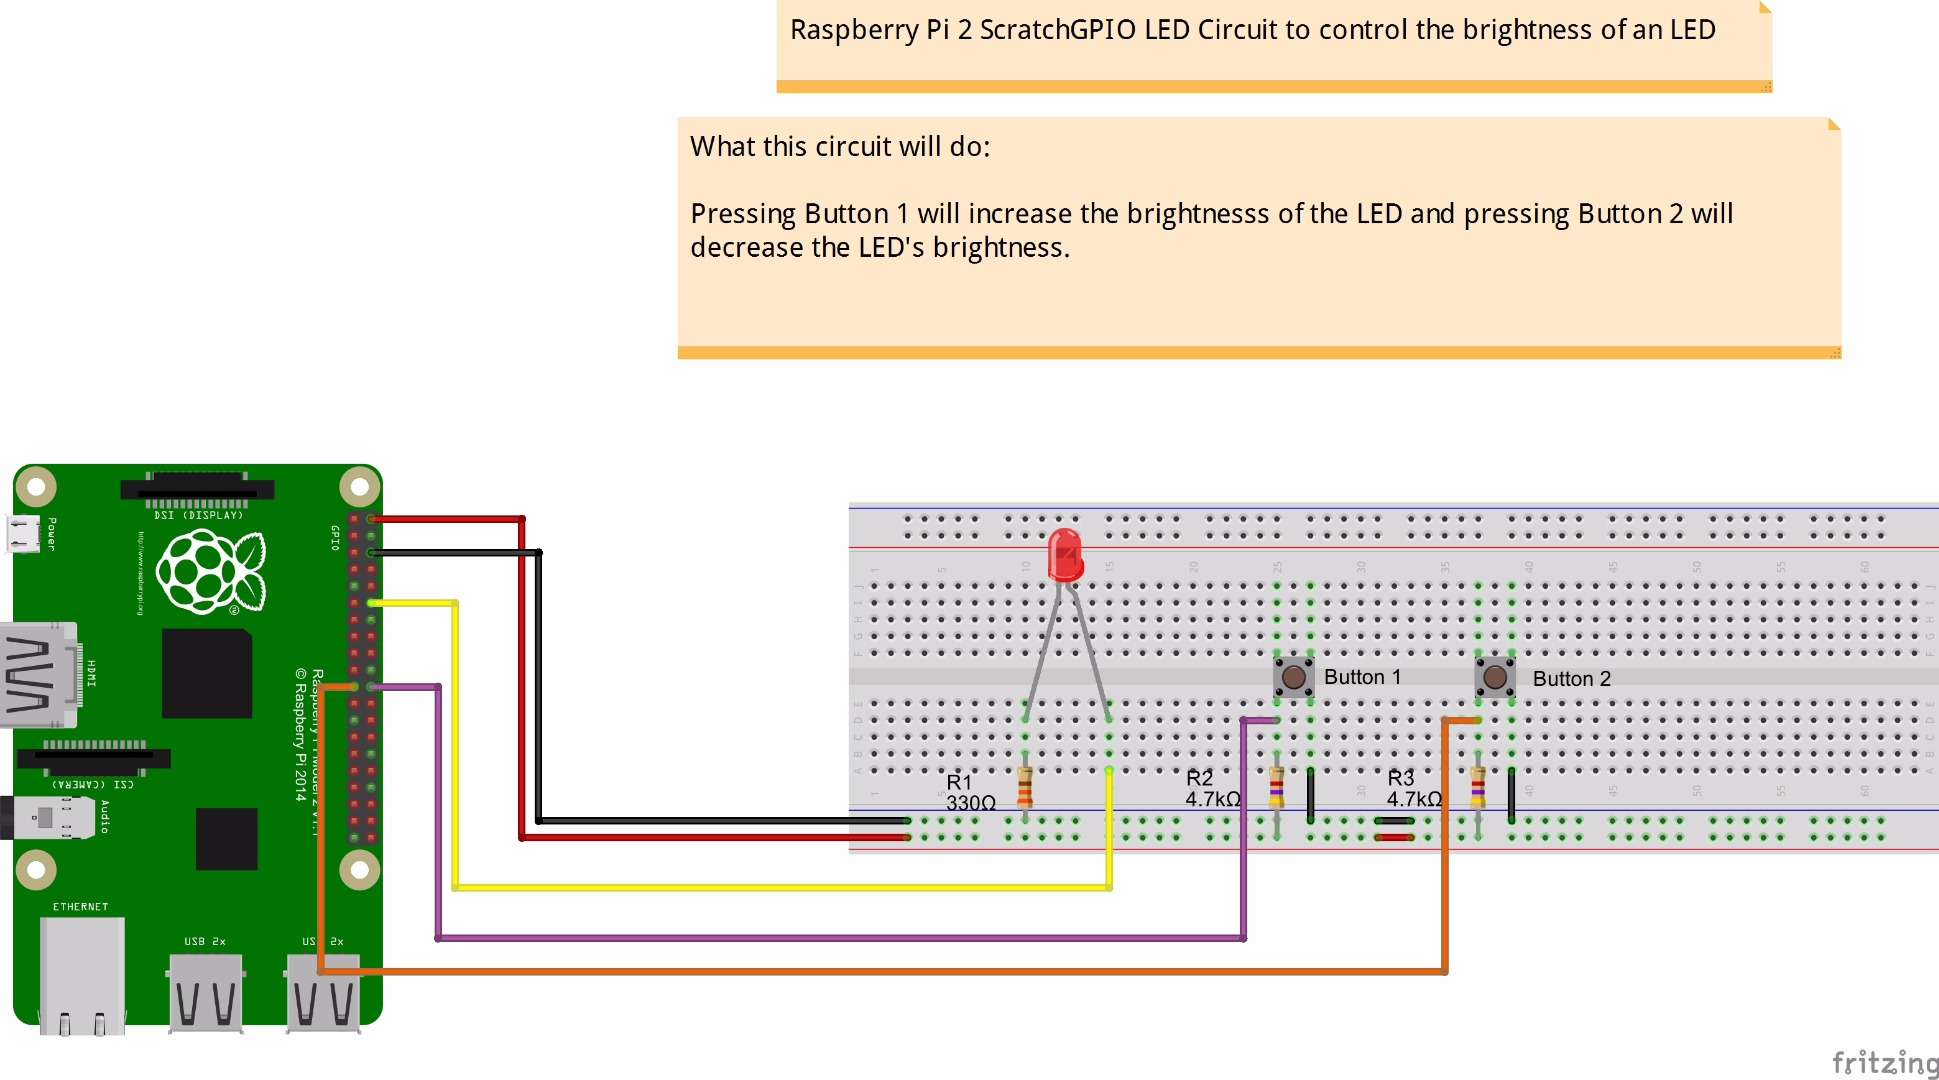 Picture of PWM Based LED Control Using Push Buttons, Raspberry Pi 2 and Scratch